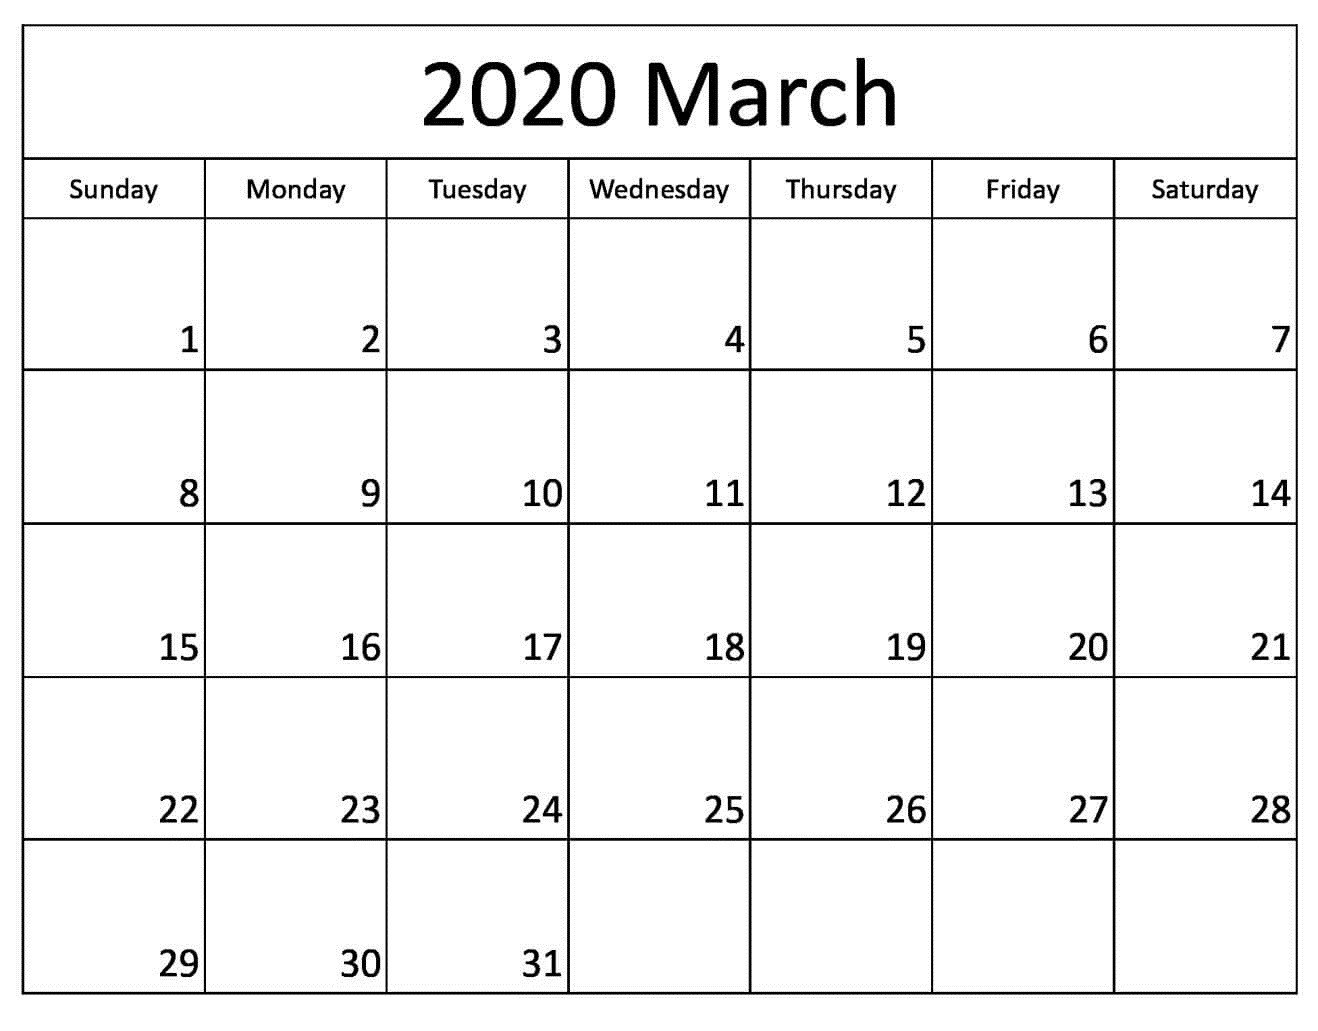 Free Printable March 2020 Calendar - Auntyno 1 - Medium